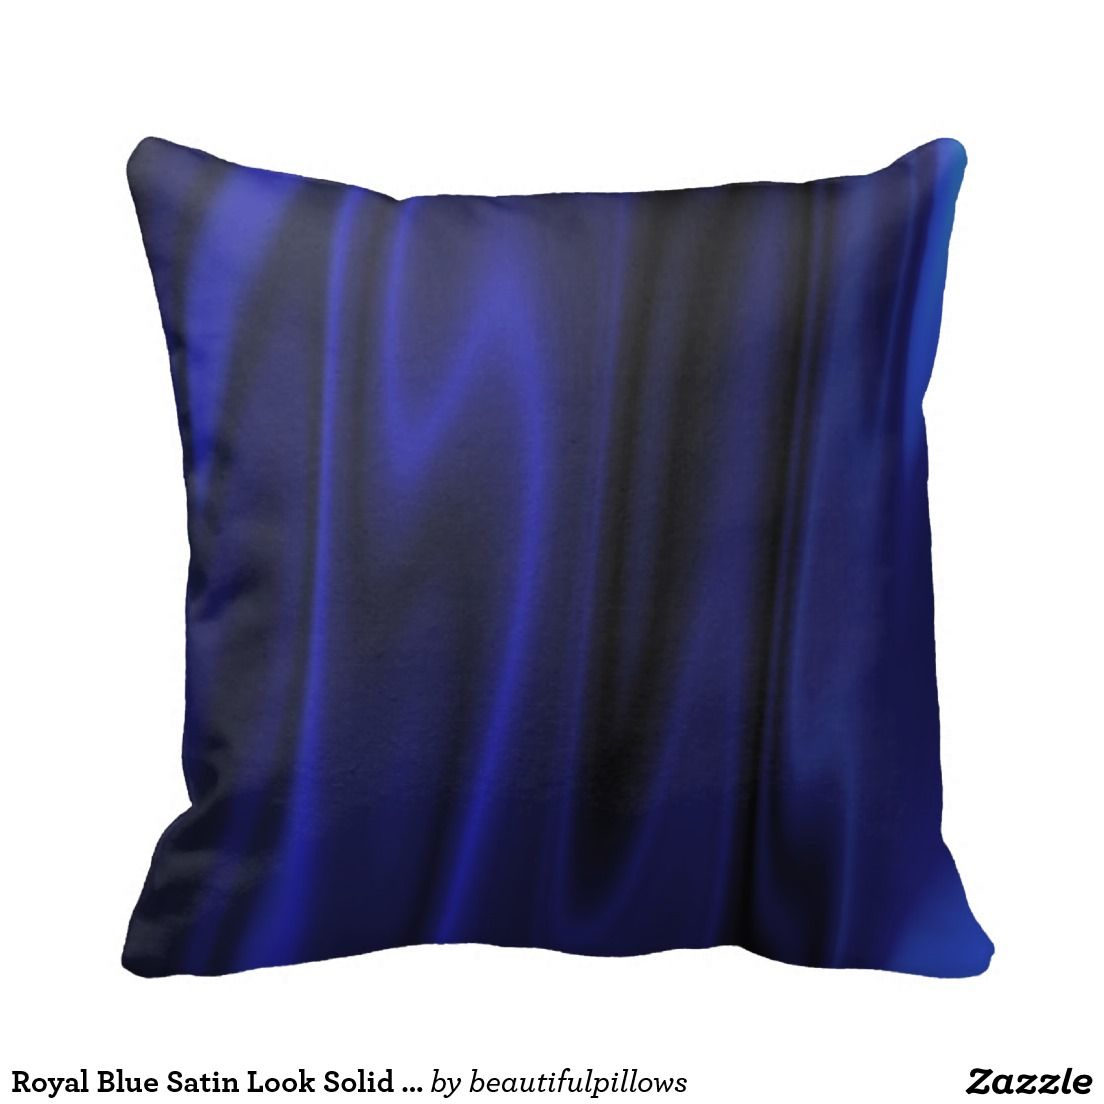 Royal Blue Satin Look Solid Color Backgrounds Pillow